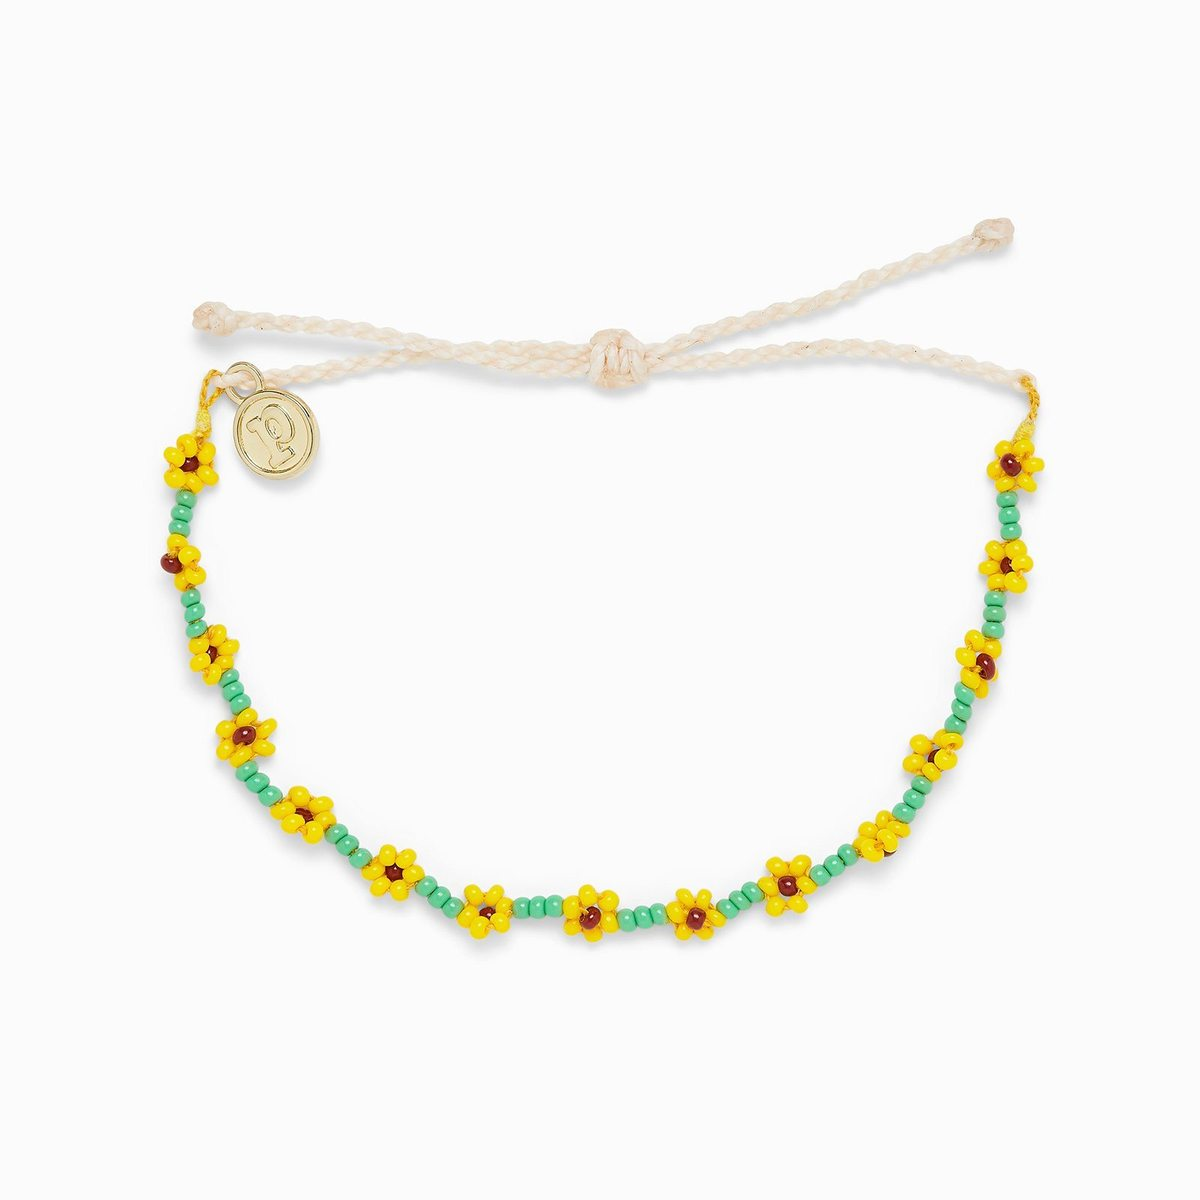 Sunflower Seed Bead Bracelet